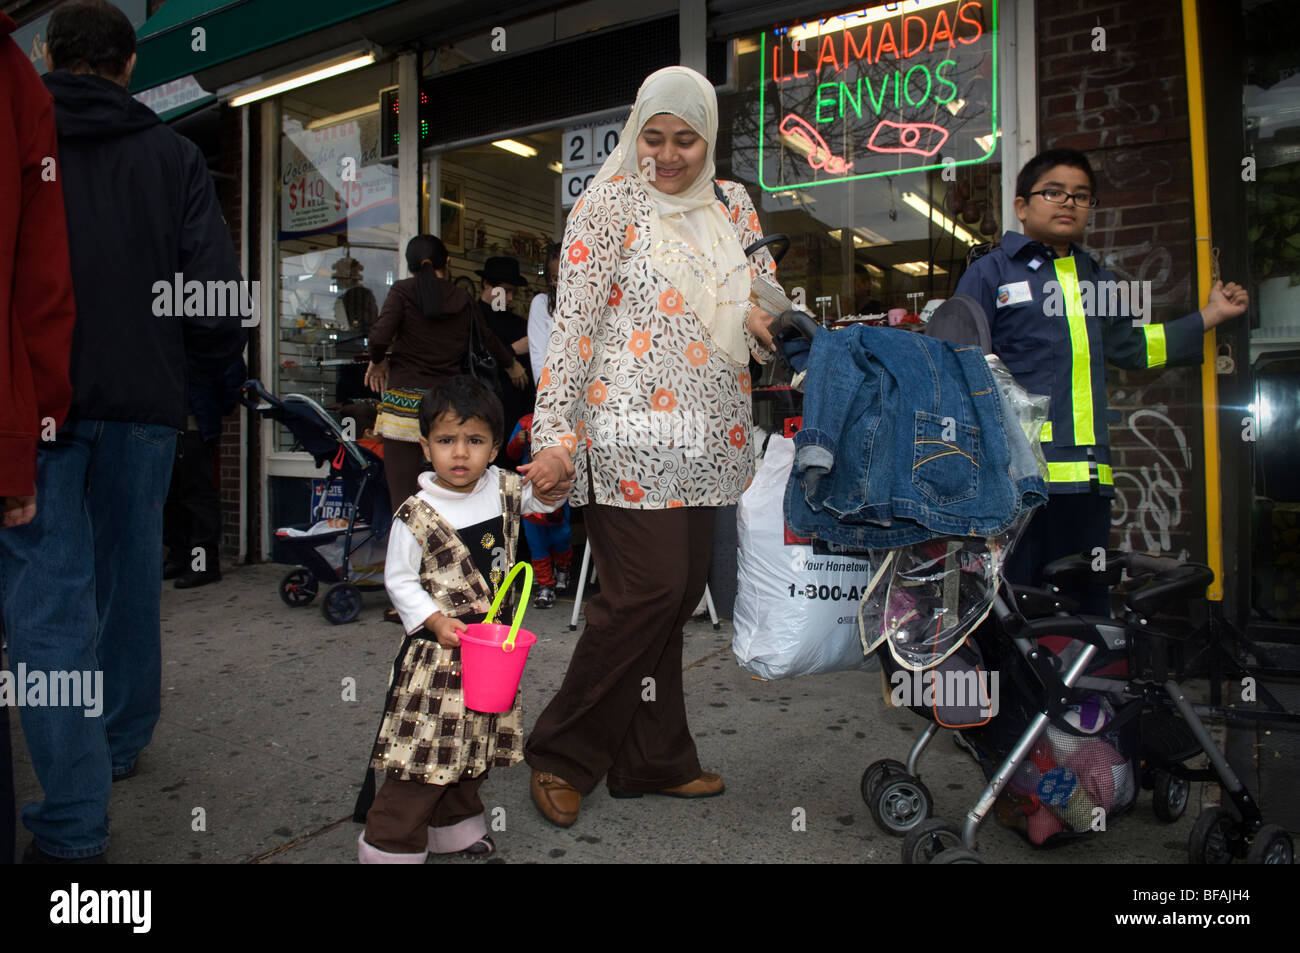 20th Annual Jackson Heights Halloween Parade in Queens, New York - Stock Image